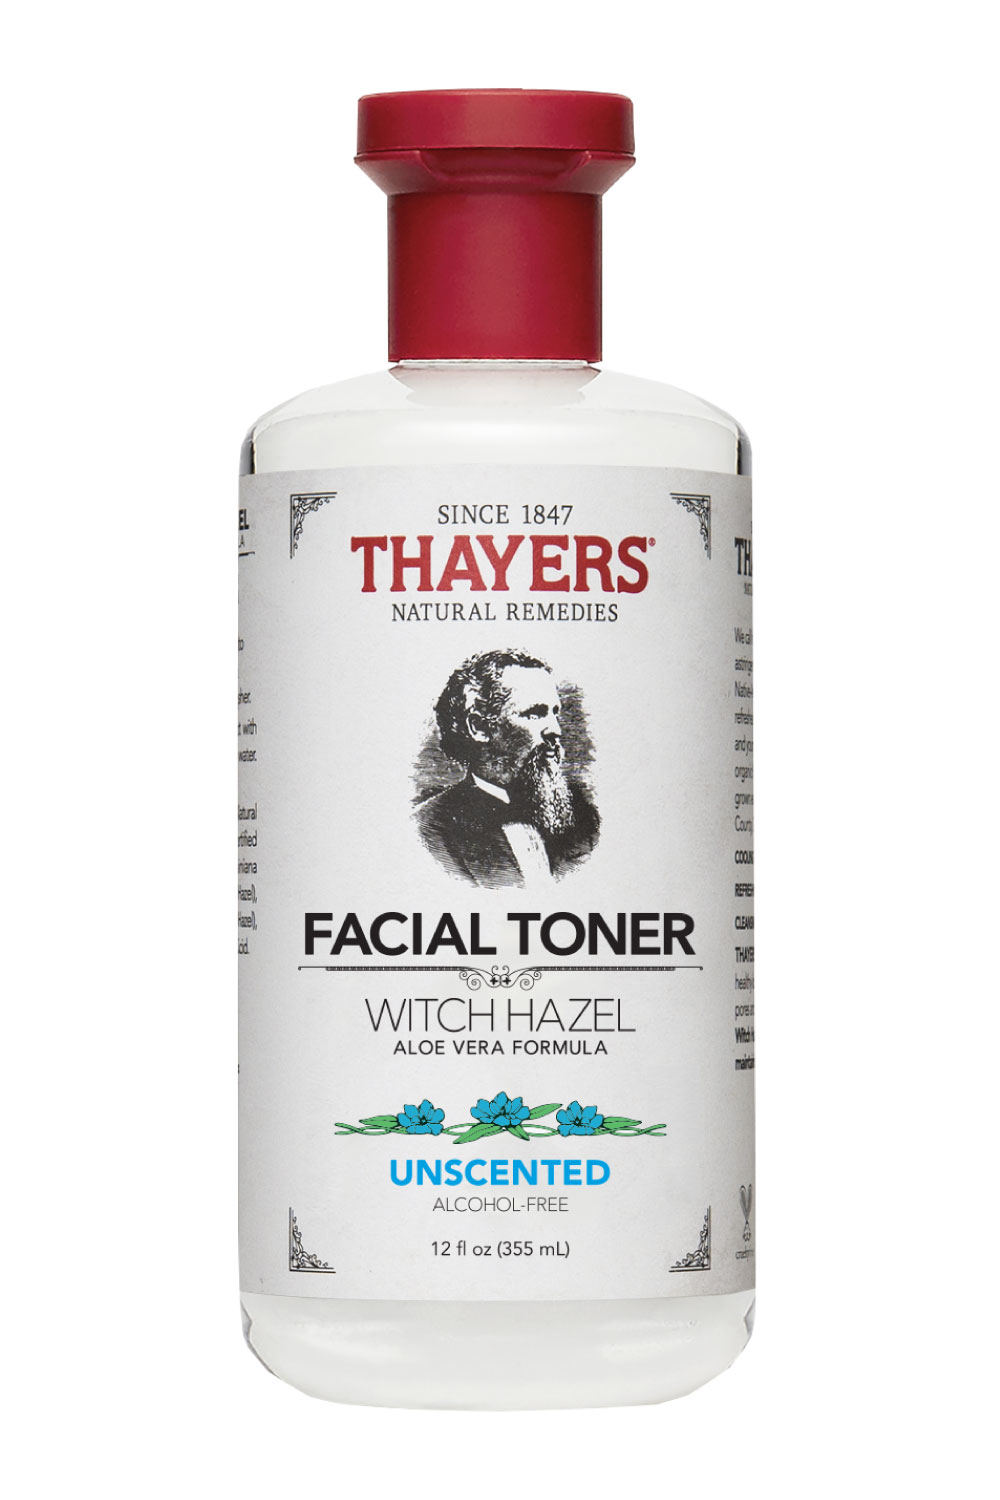 Best Toners For Sensitive Skin Thayers Alcohol Free Unscented Witch Hazel Facial Toner With Aloe Vera Formula